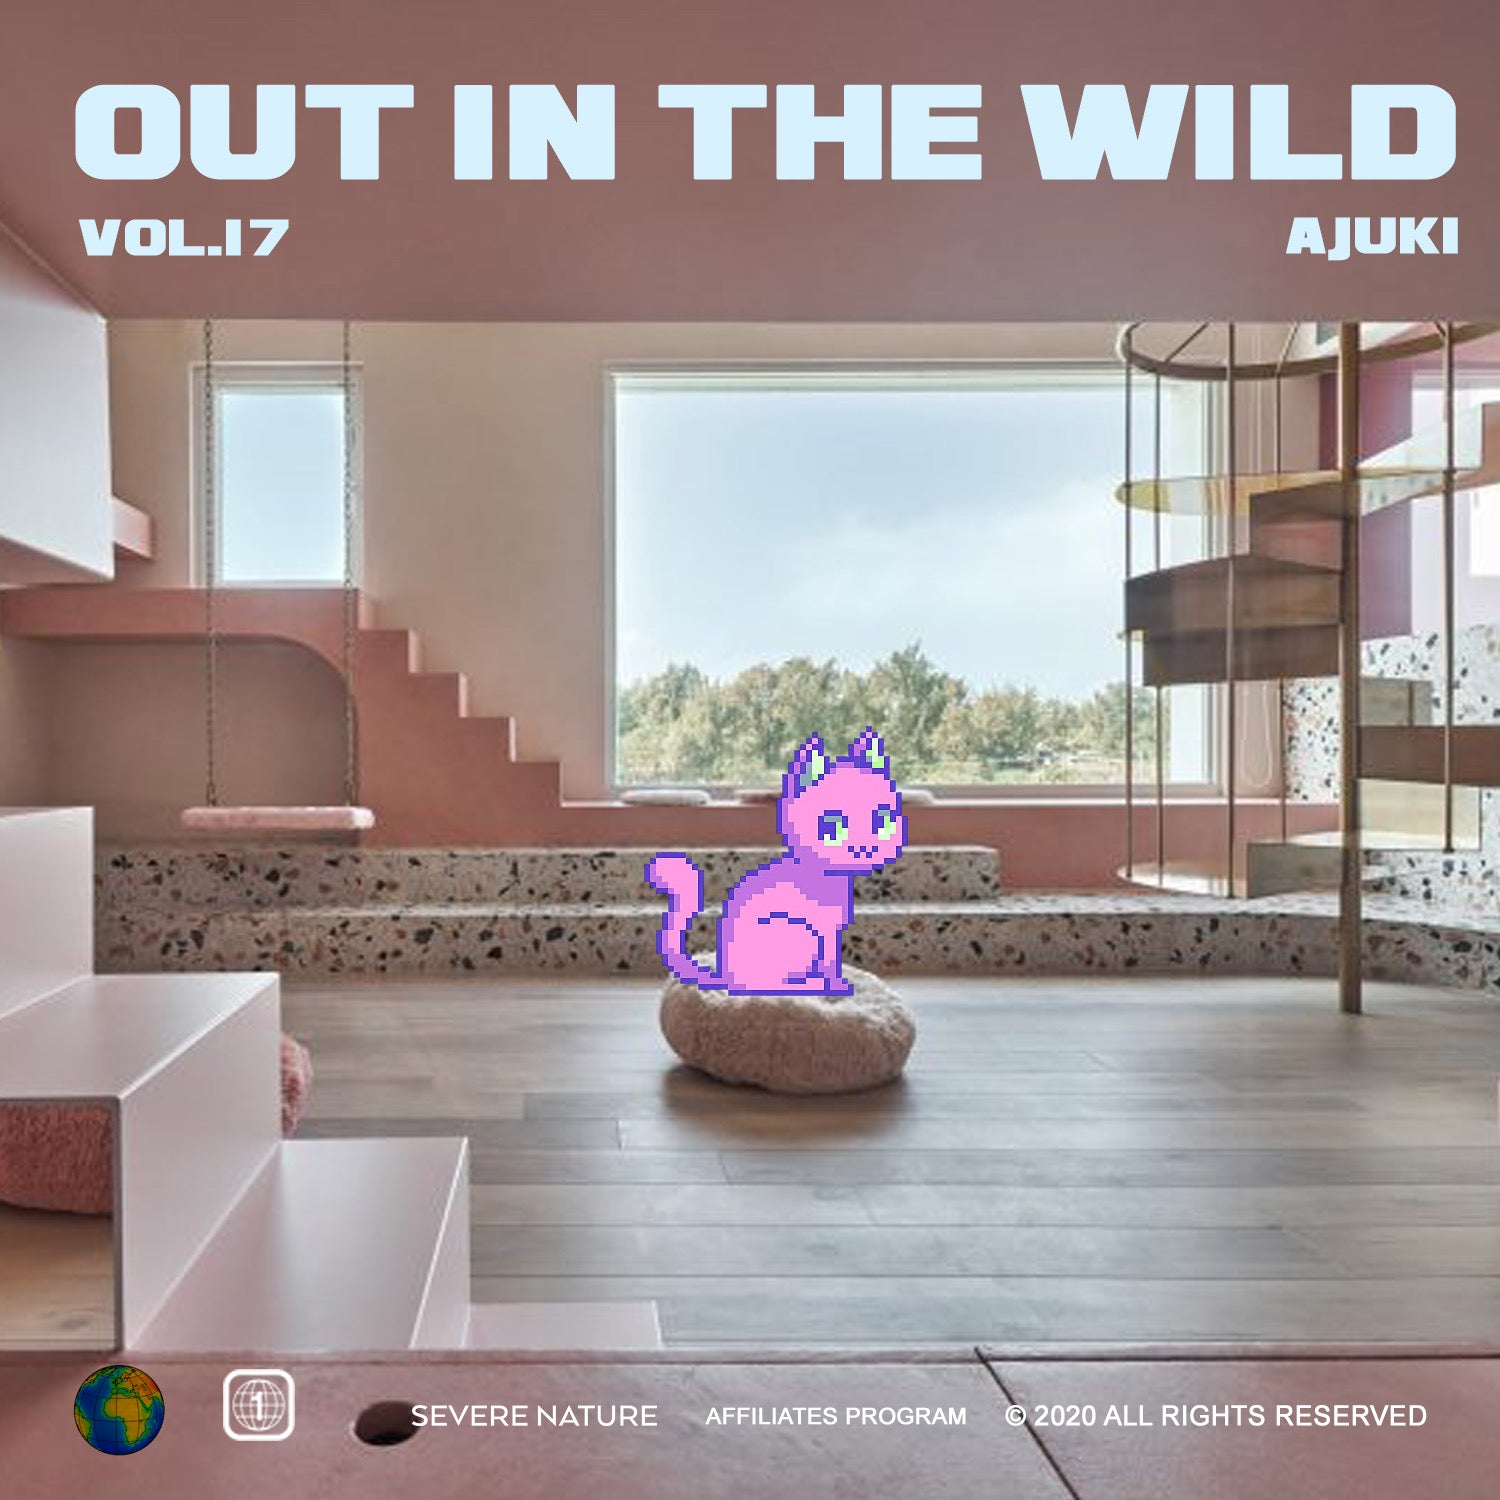 Out In The Wild Vol. 17 Curated by Ajuki